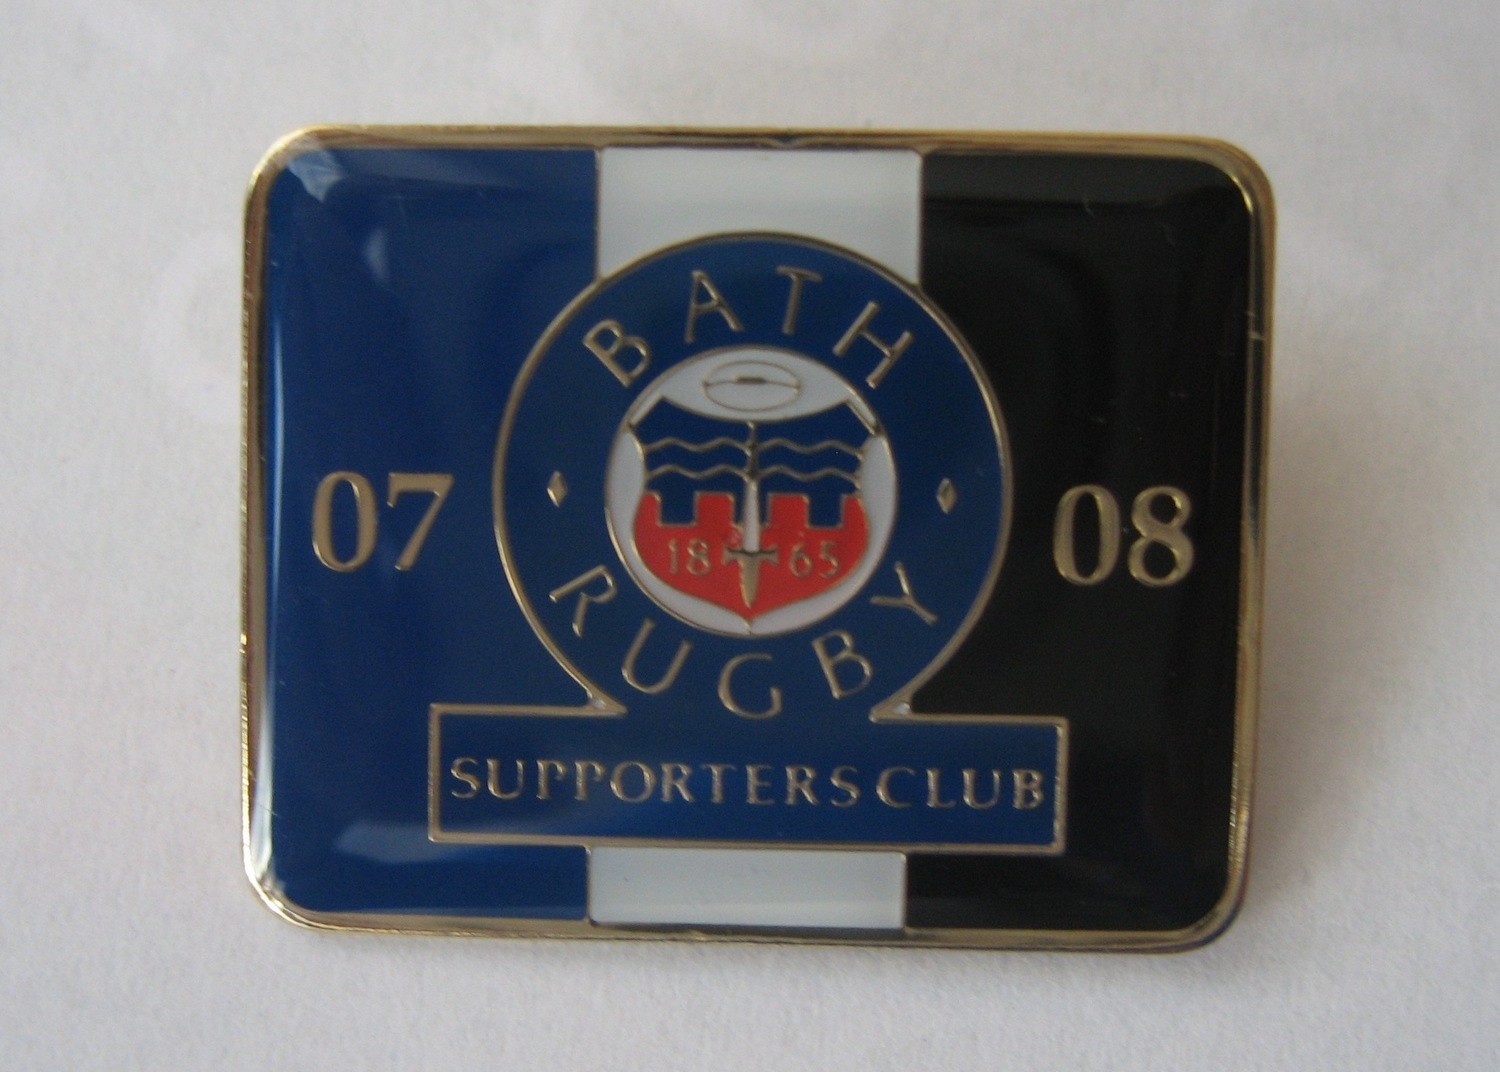 Bath Rugby Supporters' Club Historic Pin Badge - 2007-08